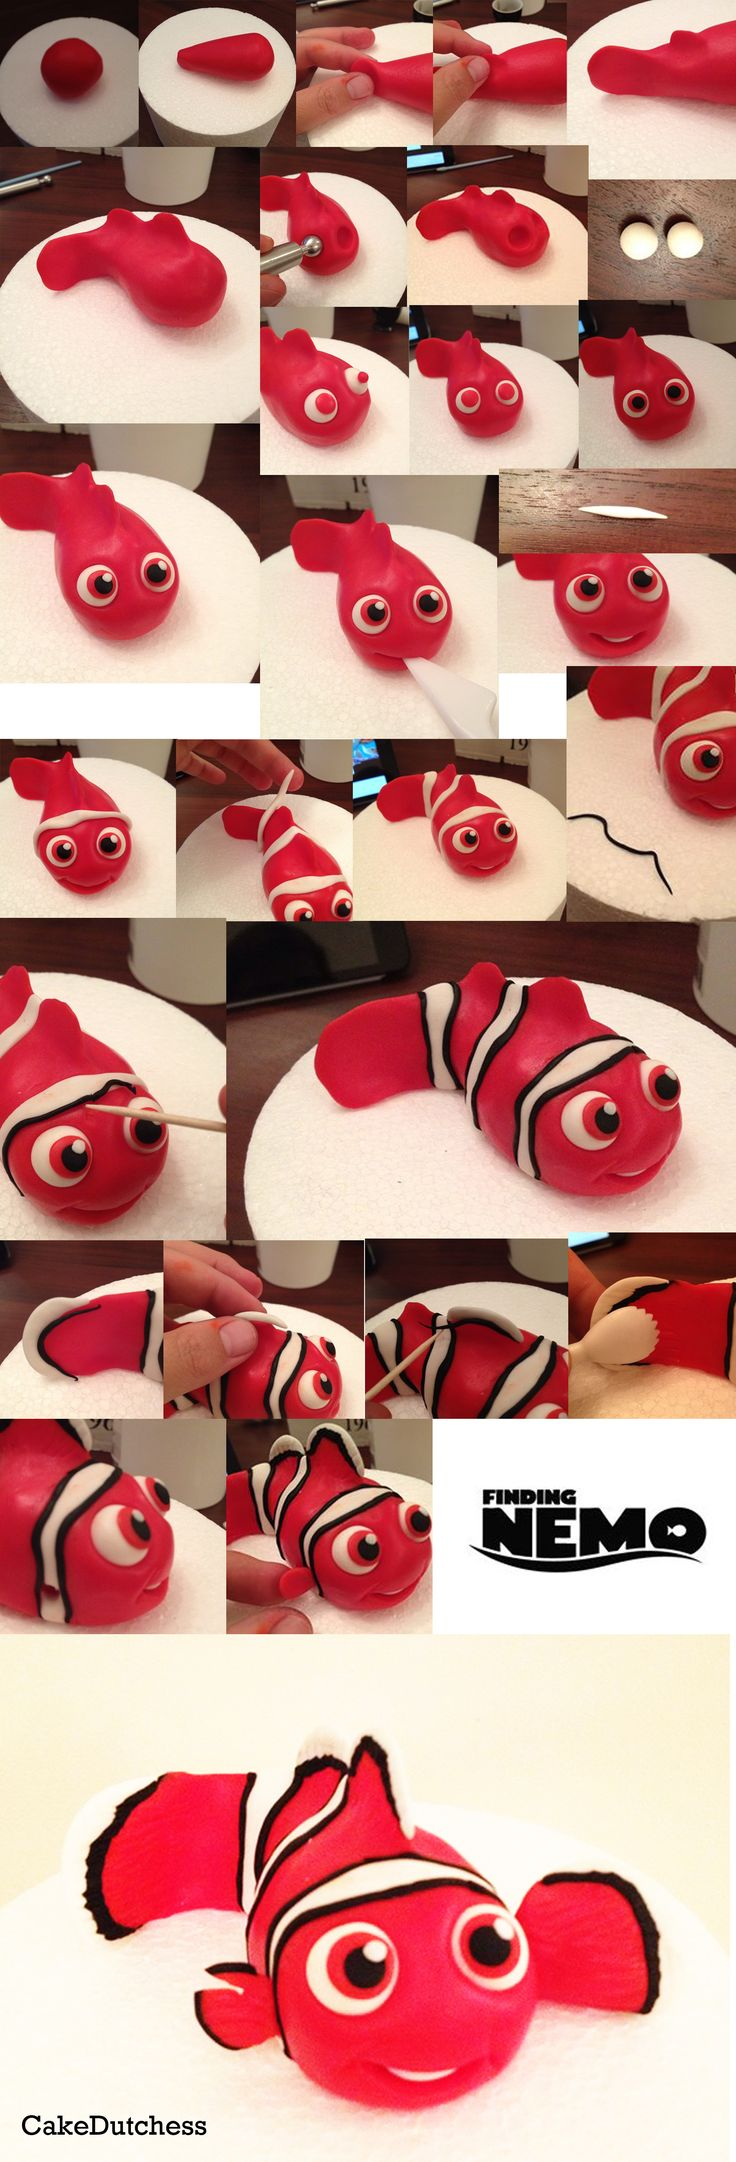 best 25 finding nemo fish ideas on pinterest finding nemo movie